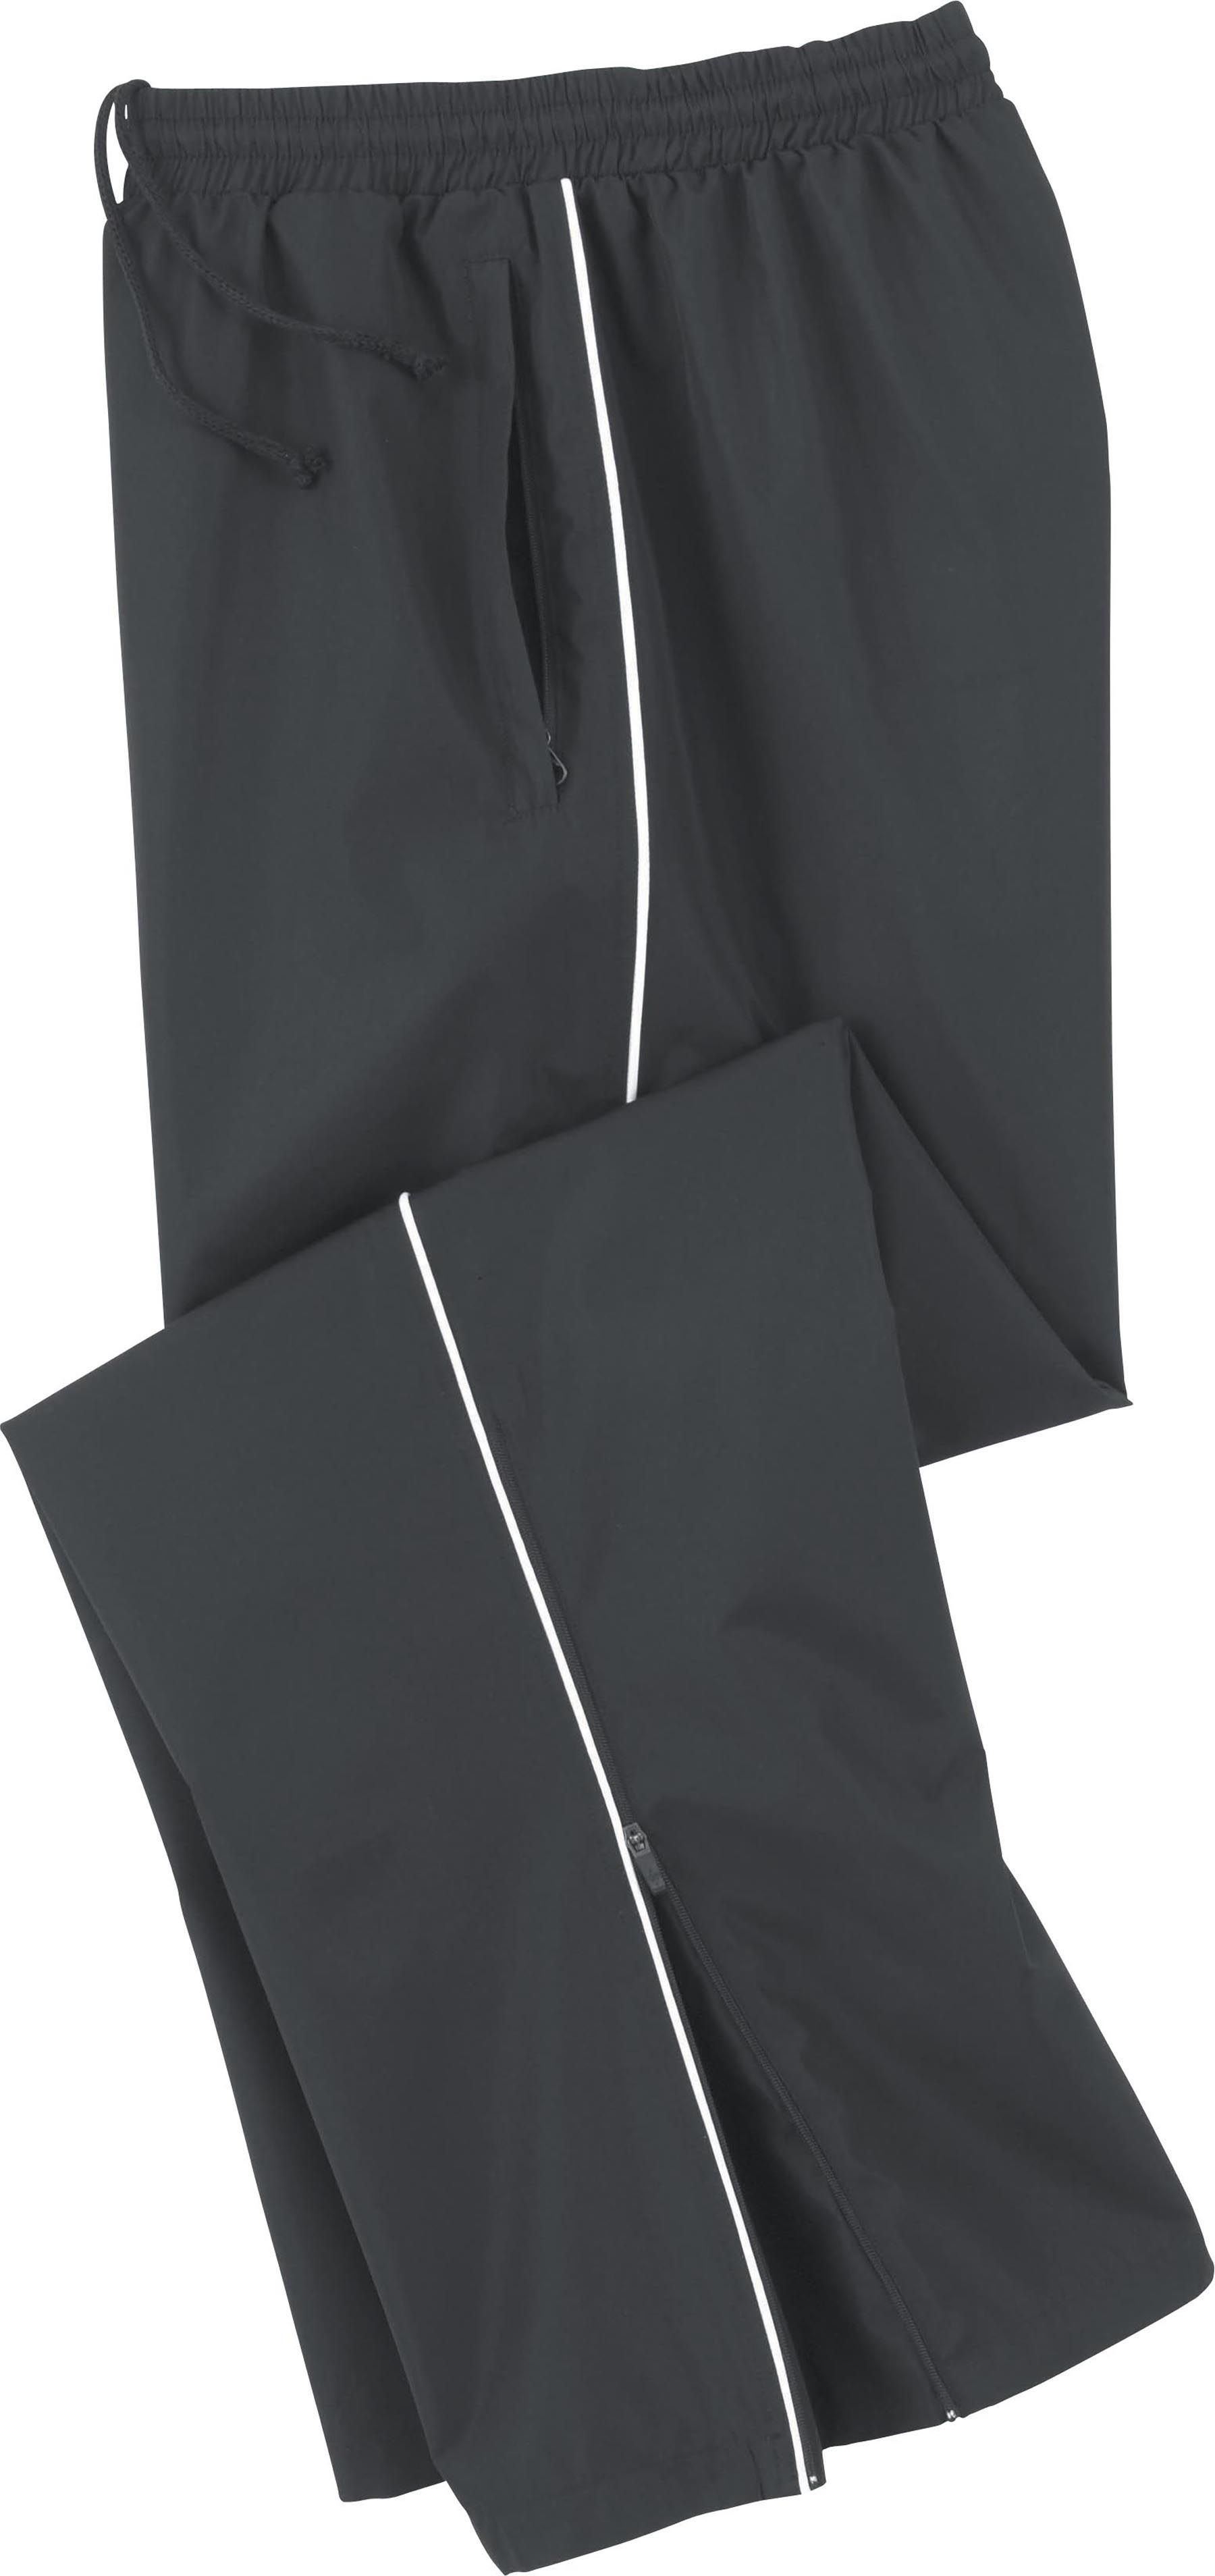 Perfect for Sports Teams: MEN'S WOVEN TWILL ATHLETIC PANTS